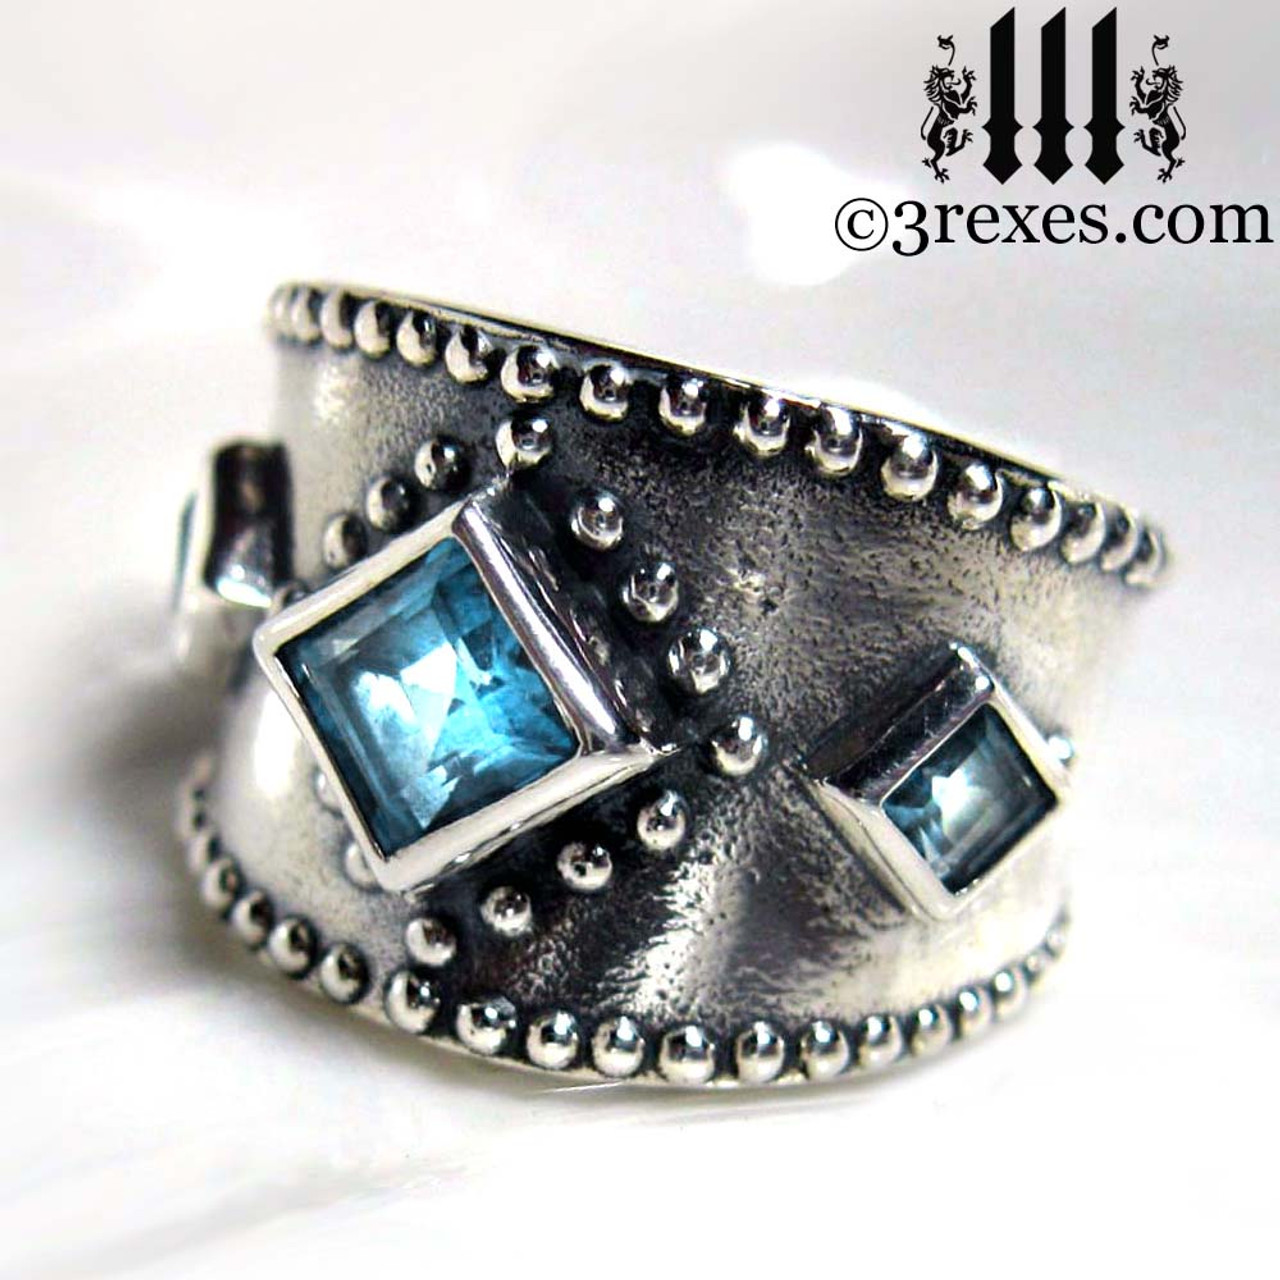 silver medieval wedding ring with gothic blue topaz stones - Gothic Wedding Ring